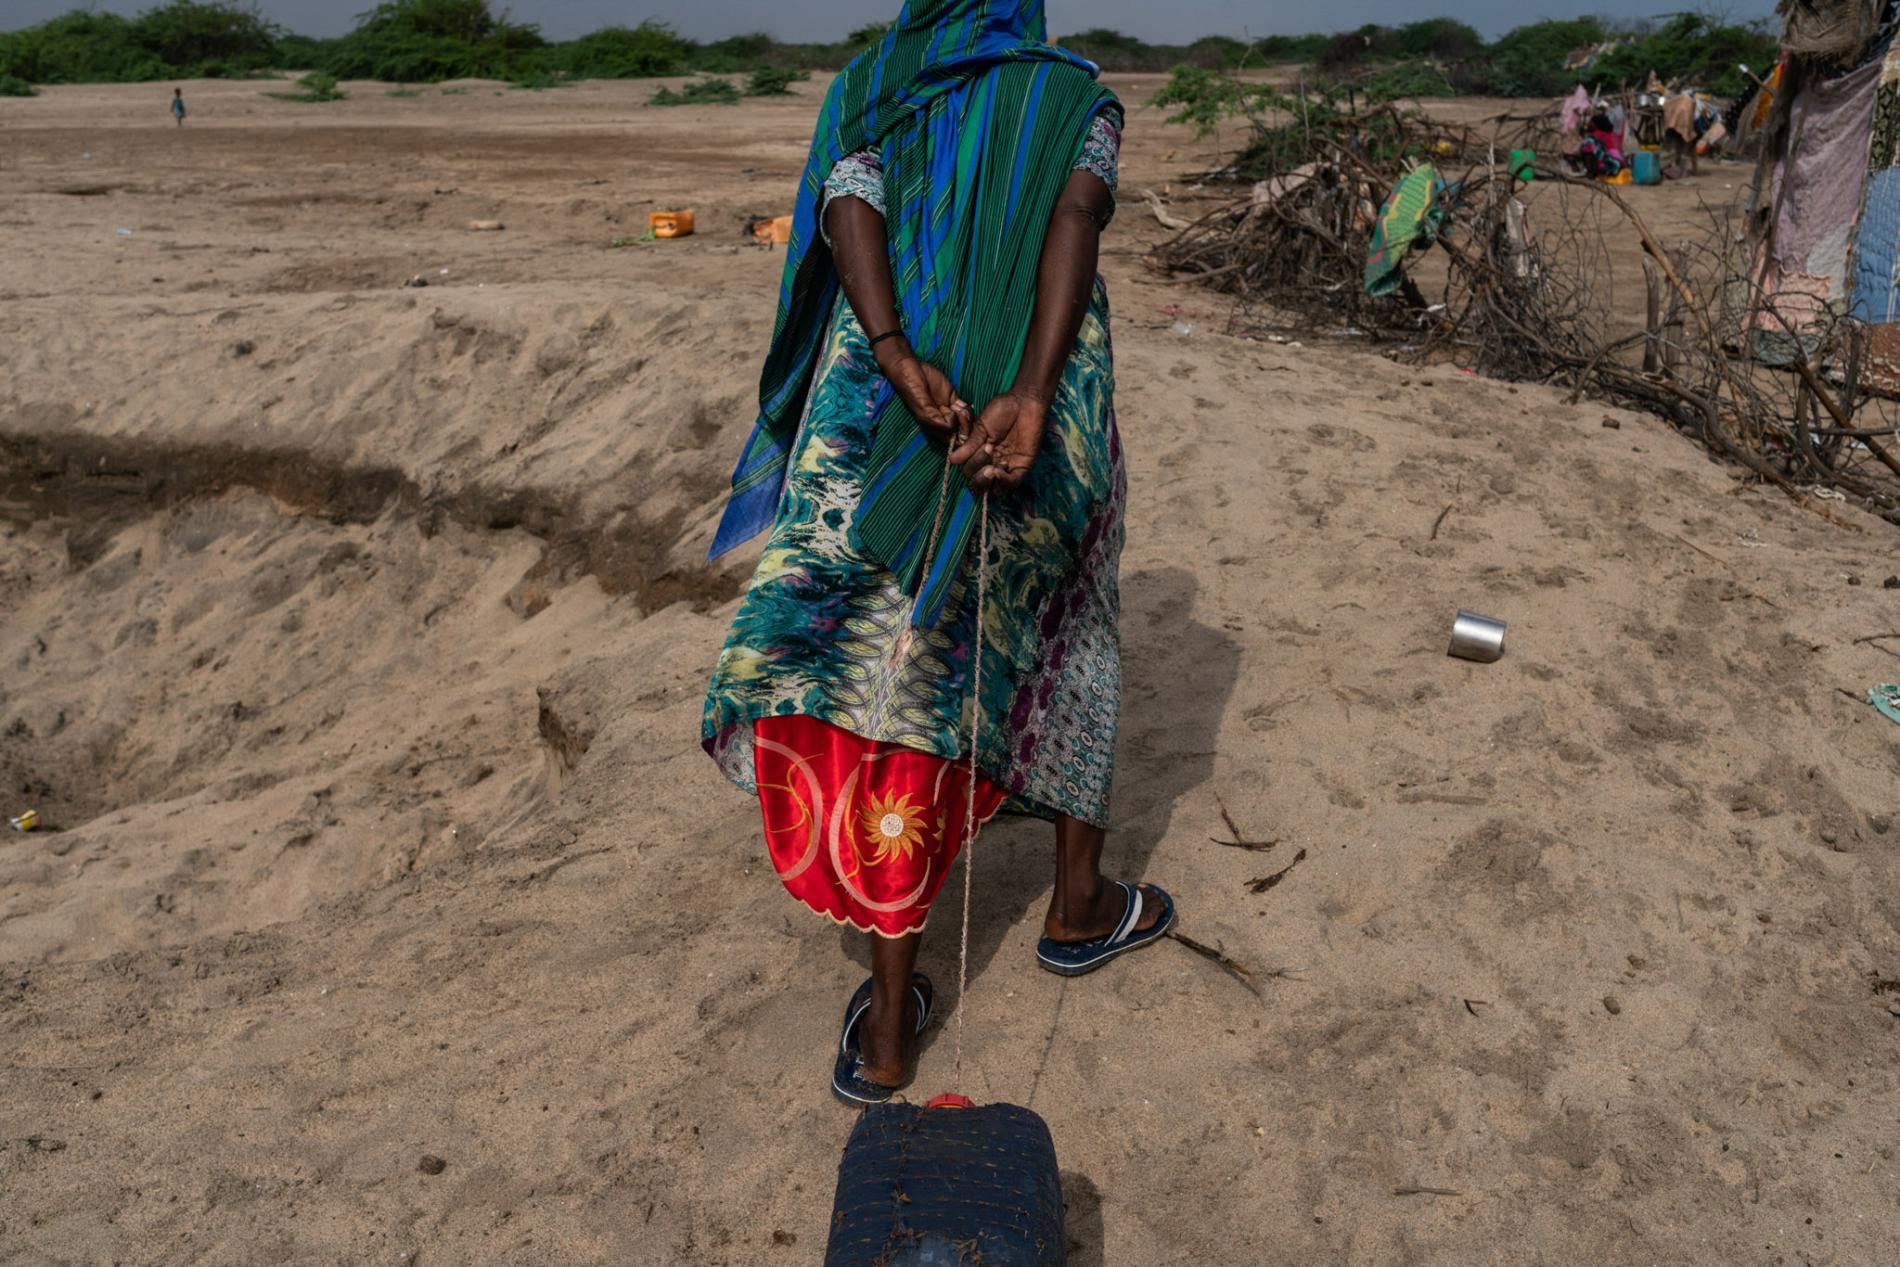 Guude Aadan drags water from a hole dug in the ground in Hijiinle. She came here from her home village of Topta, after drought in 2017 killed her herd of 70 goats and sheep. She now depends on humanitarian aid—and food gifts from relatives.